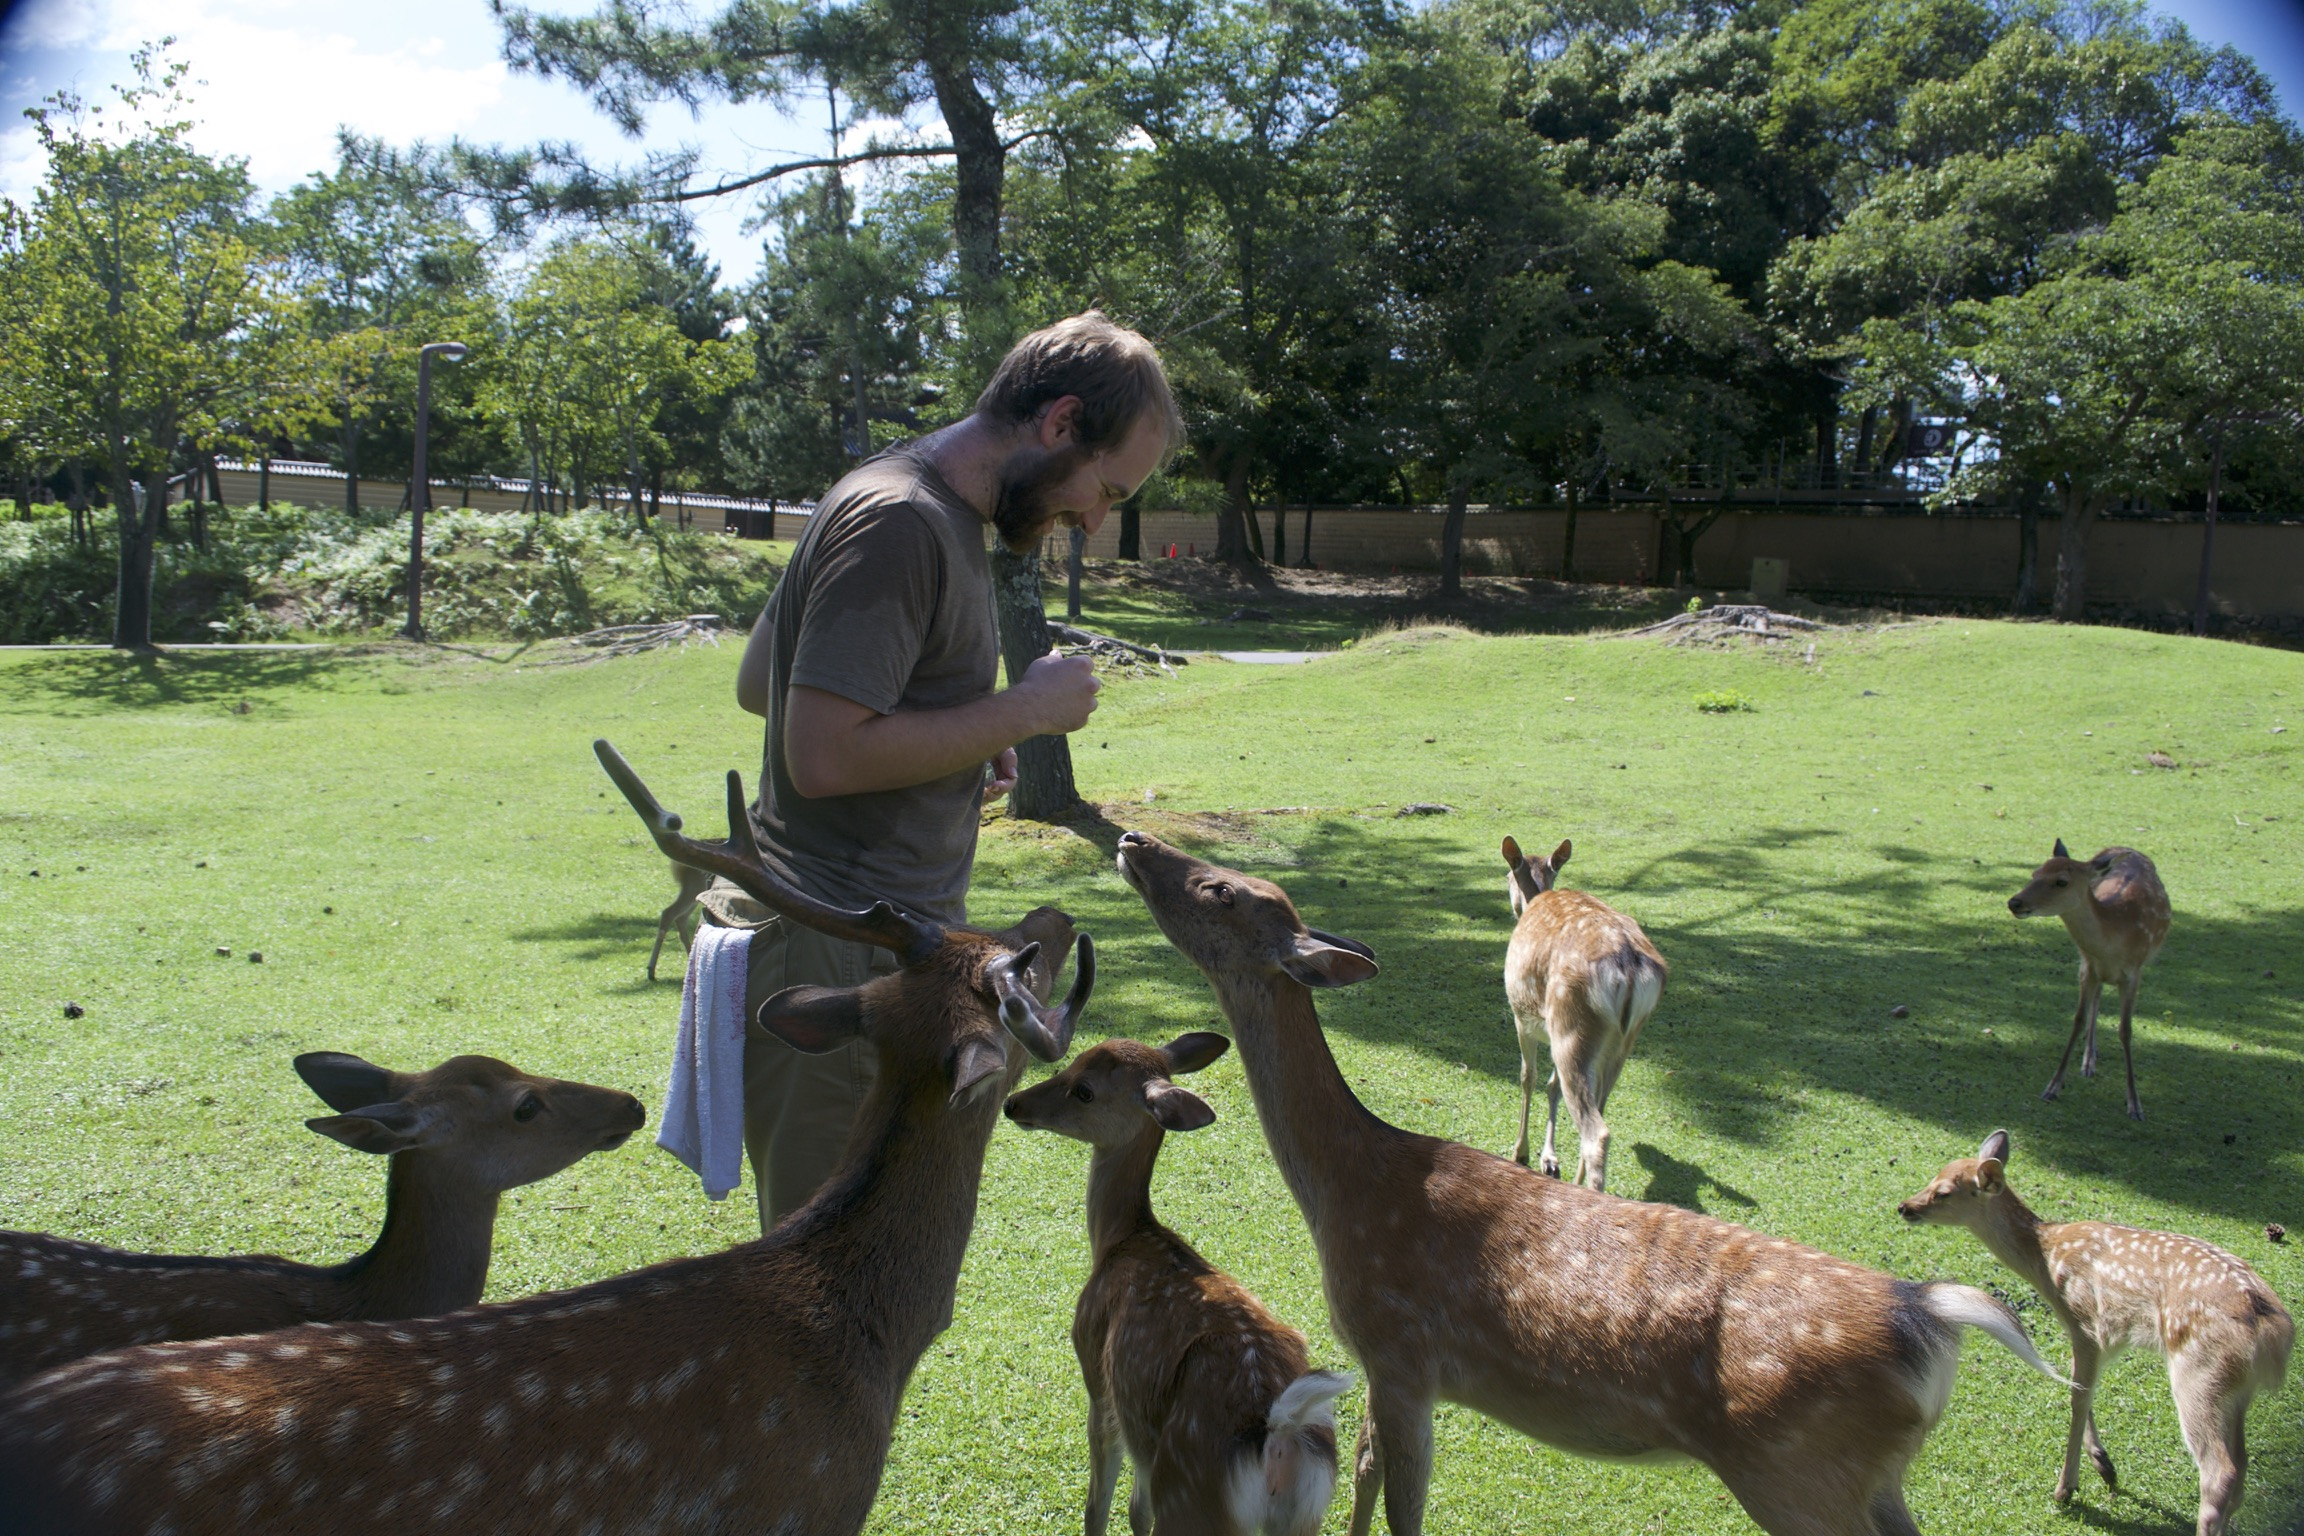 A tourist is surrounded by a buck, does, and fawns.